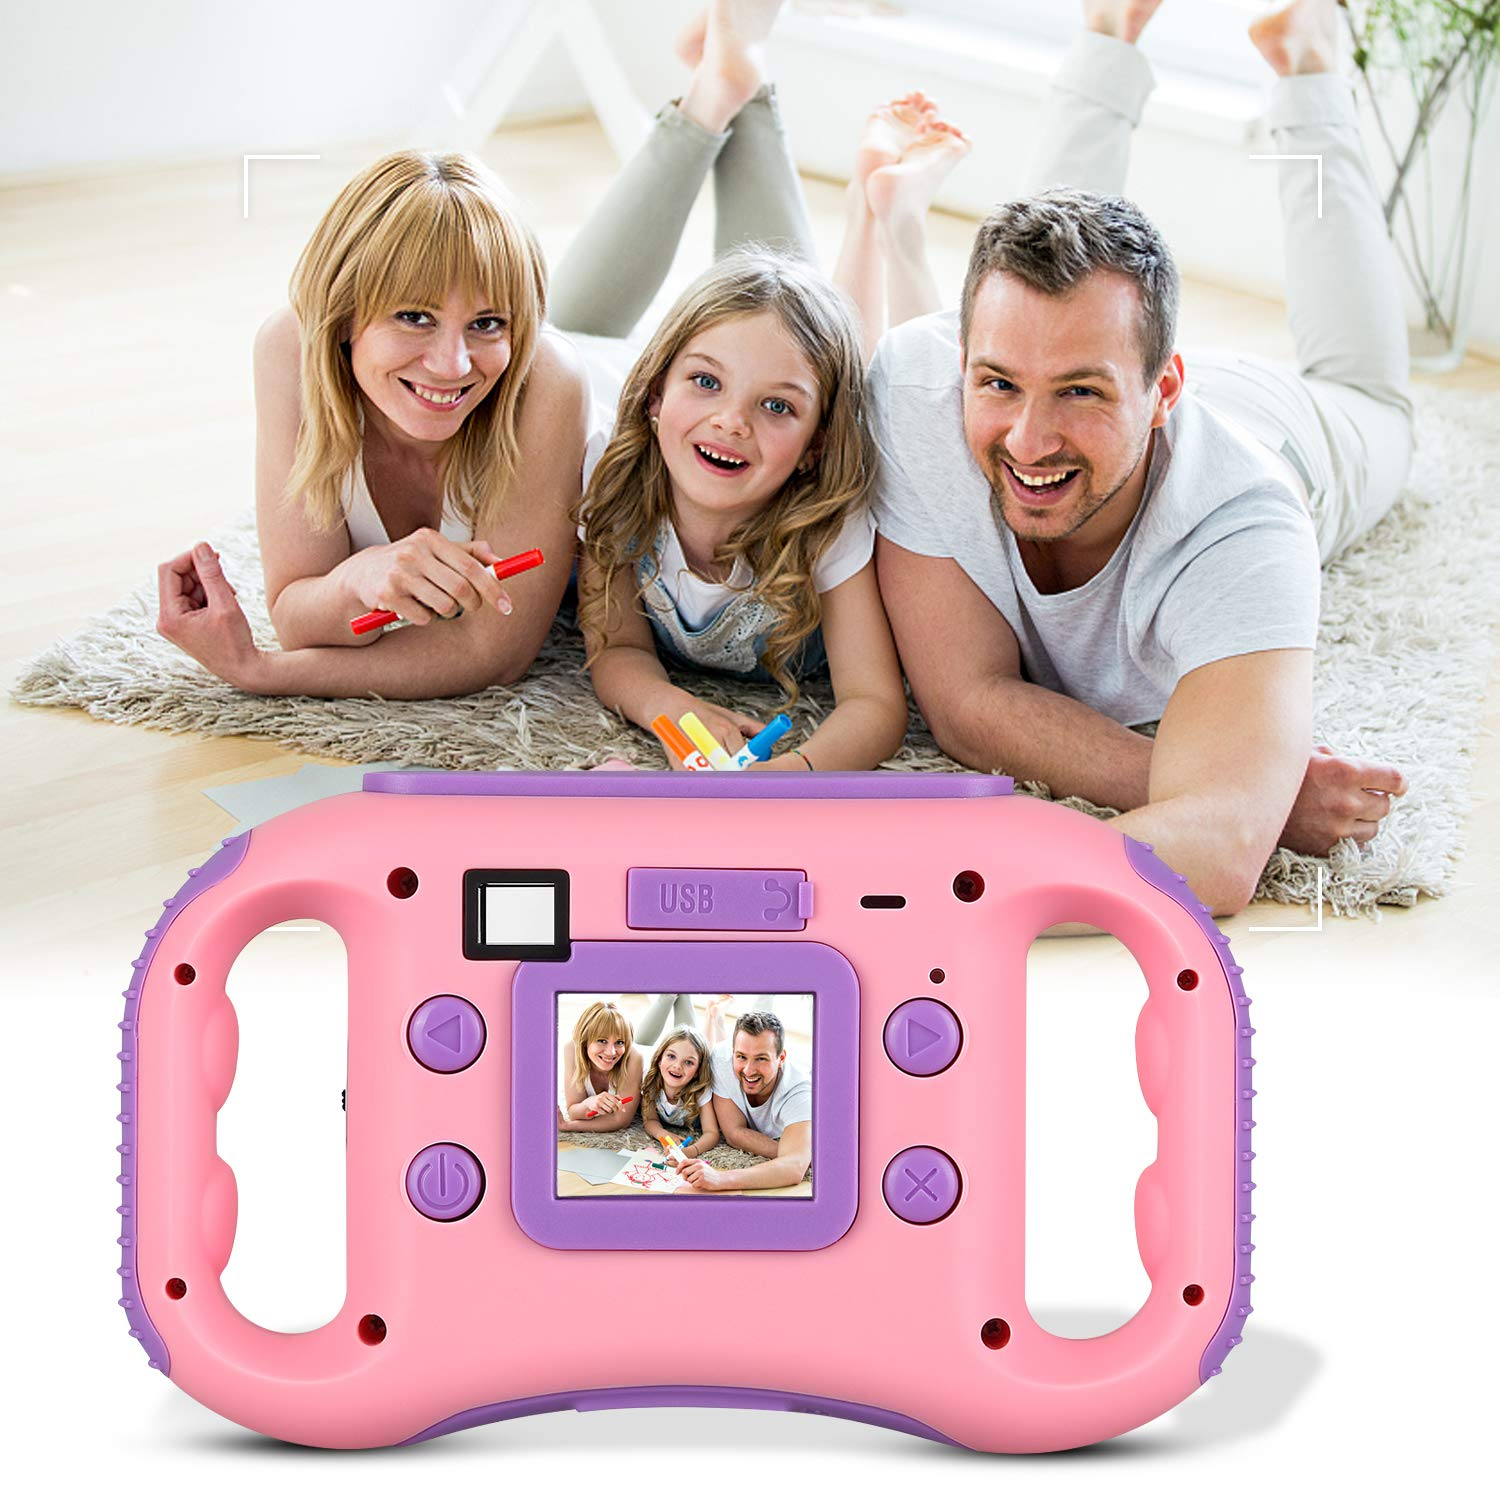 AGM Kids Camera for Girls & Boys, 1.77Inch Children Video Recorder Toddler Digital Camera,Creative Birthday Children's Day Gifts (Pink) by AGM (Image #7)